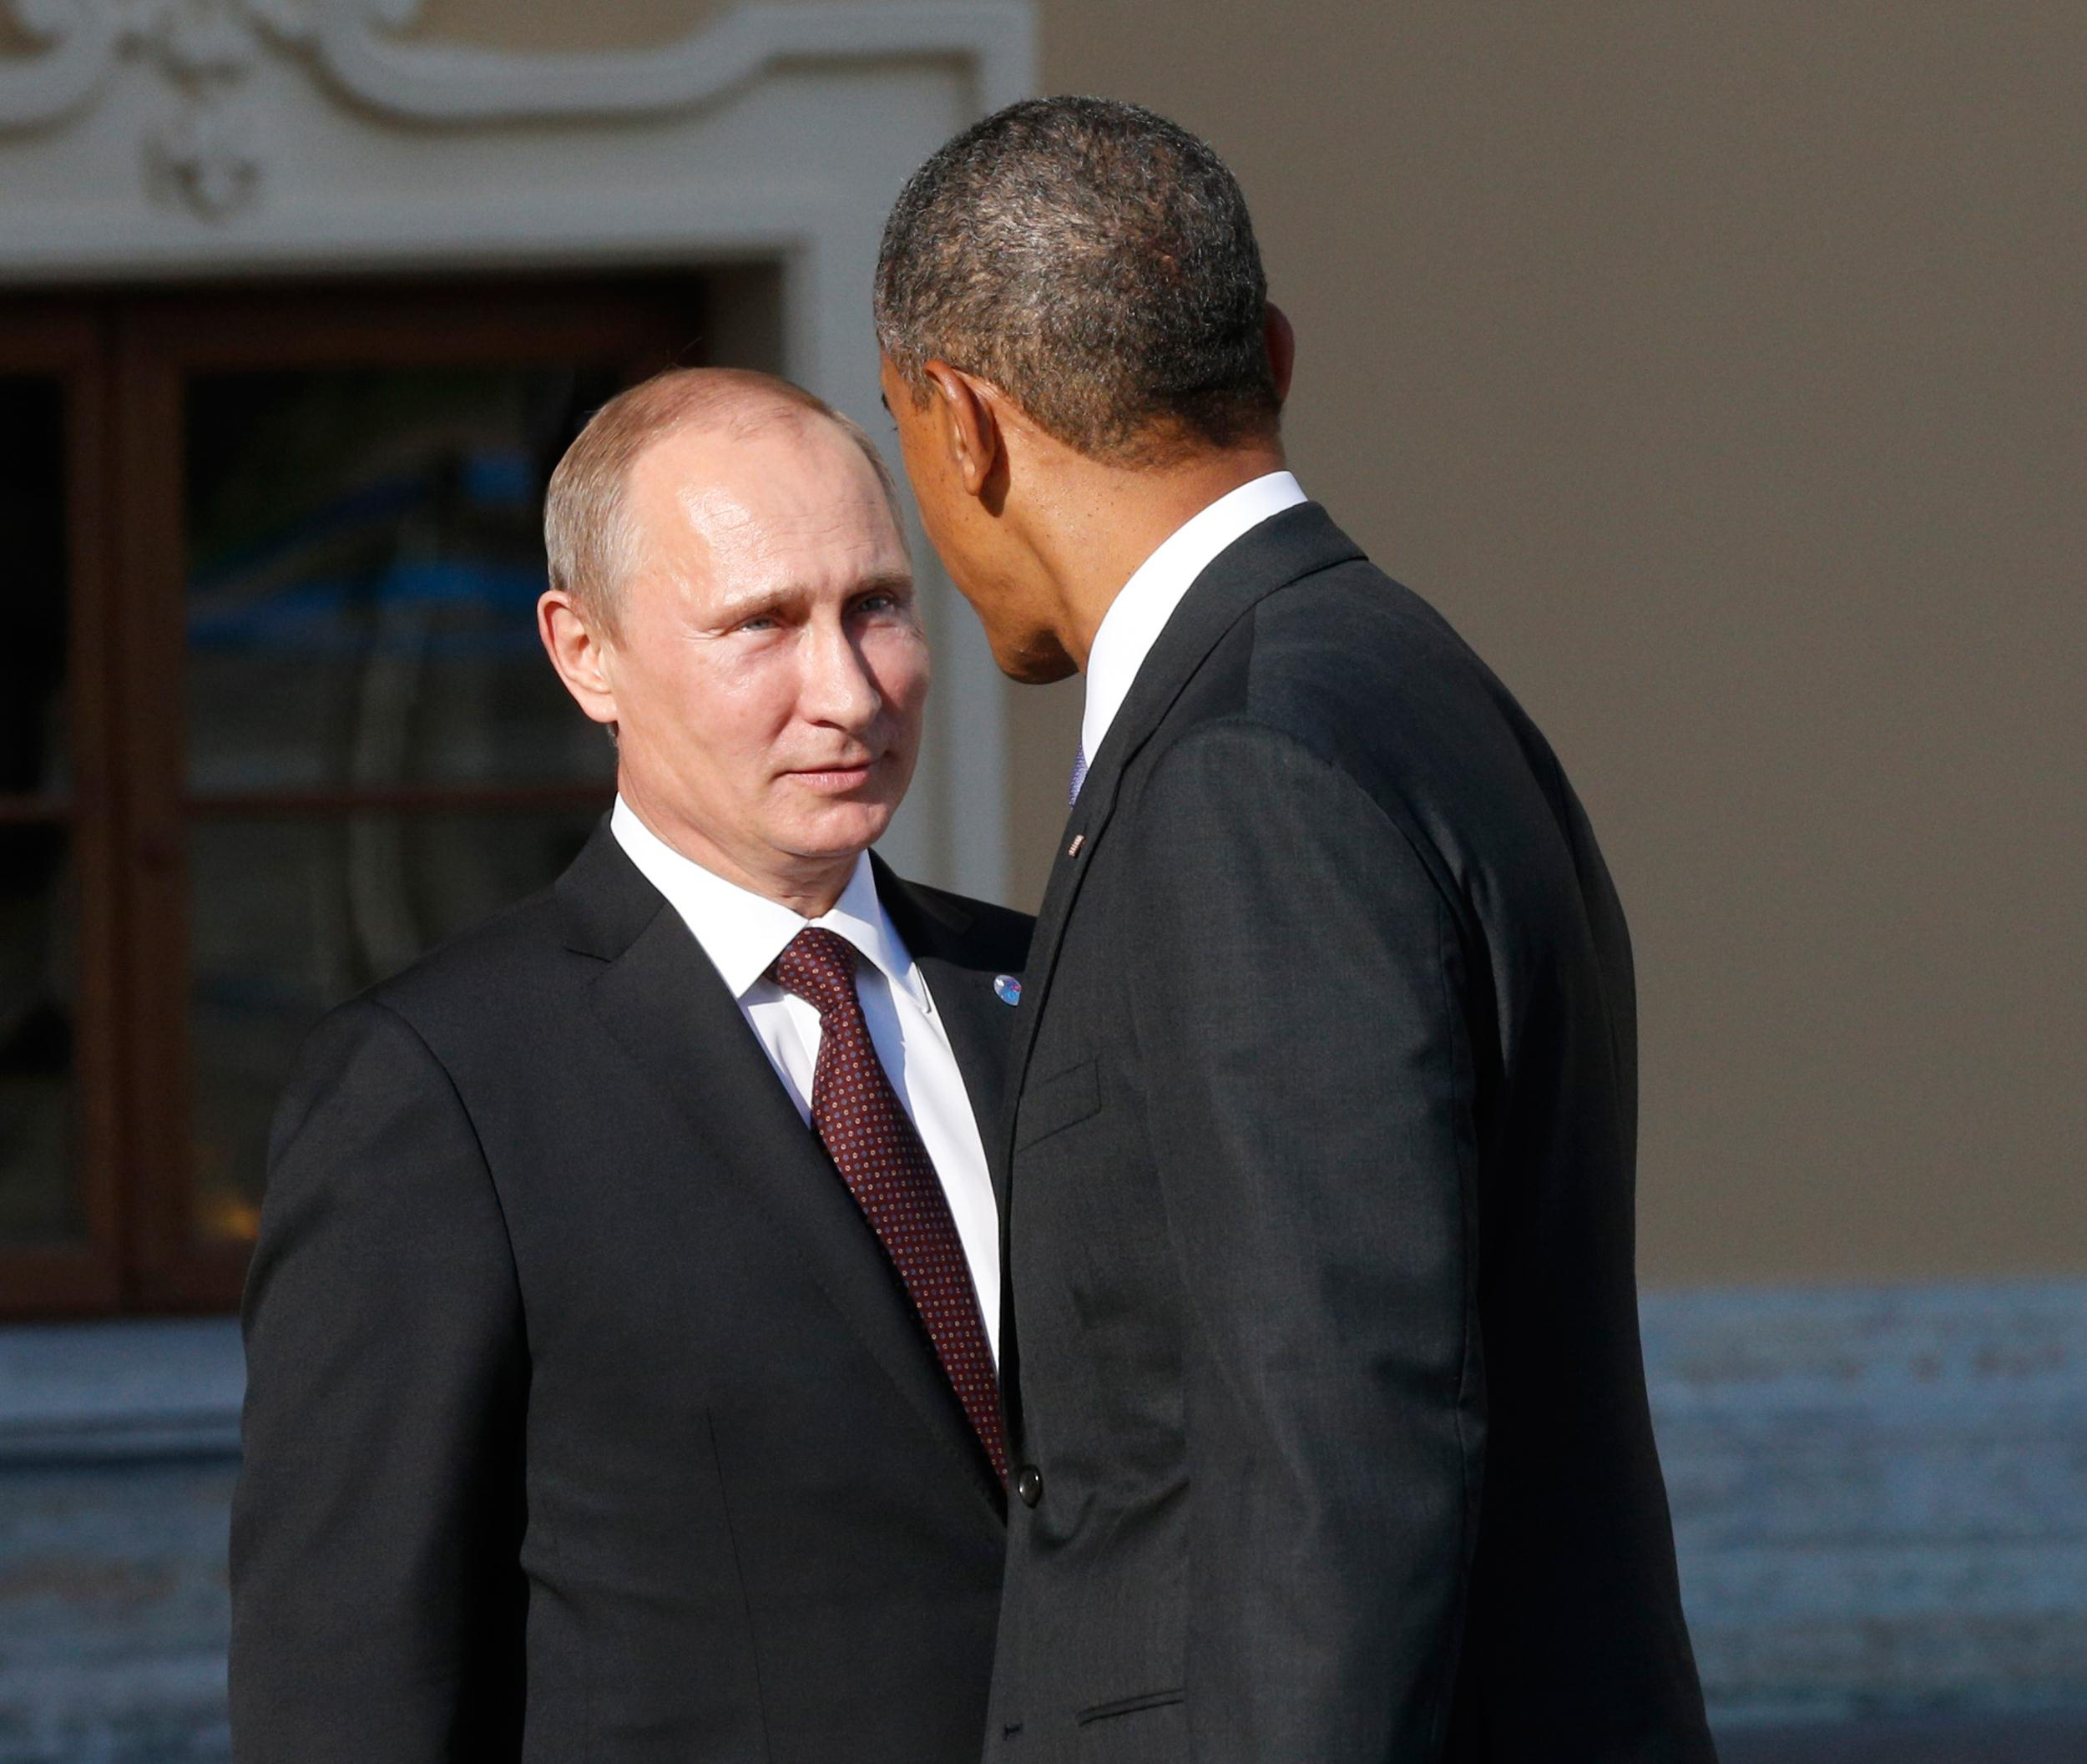 Image: Vladimir Putin and Barack Obama at a G-20 summit in 2013.